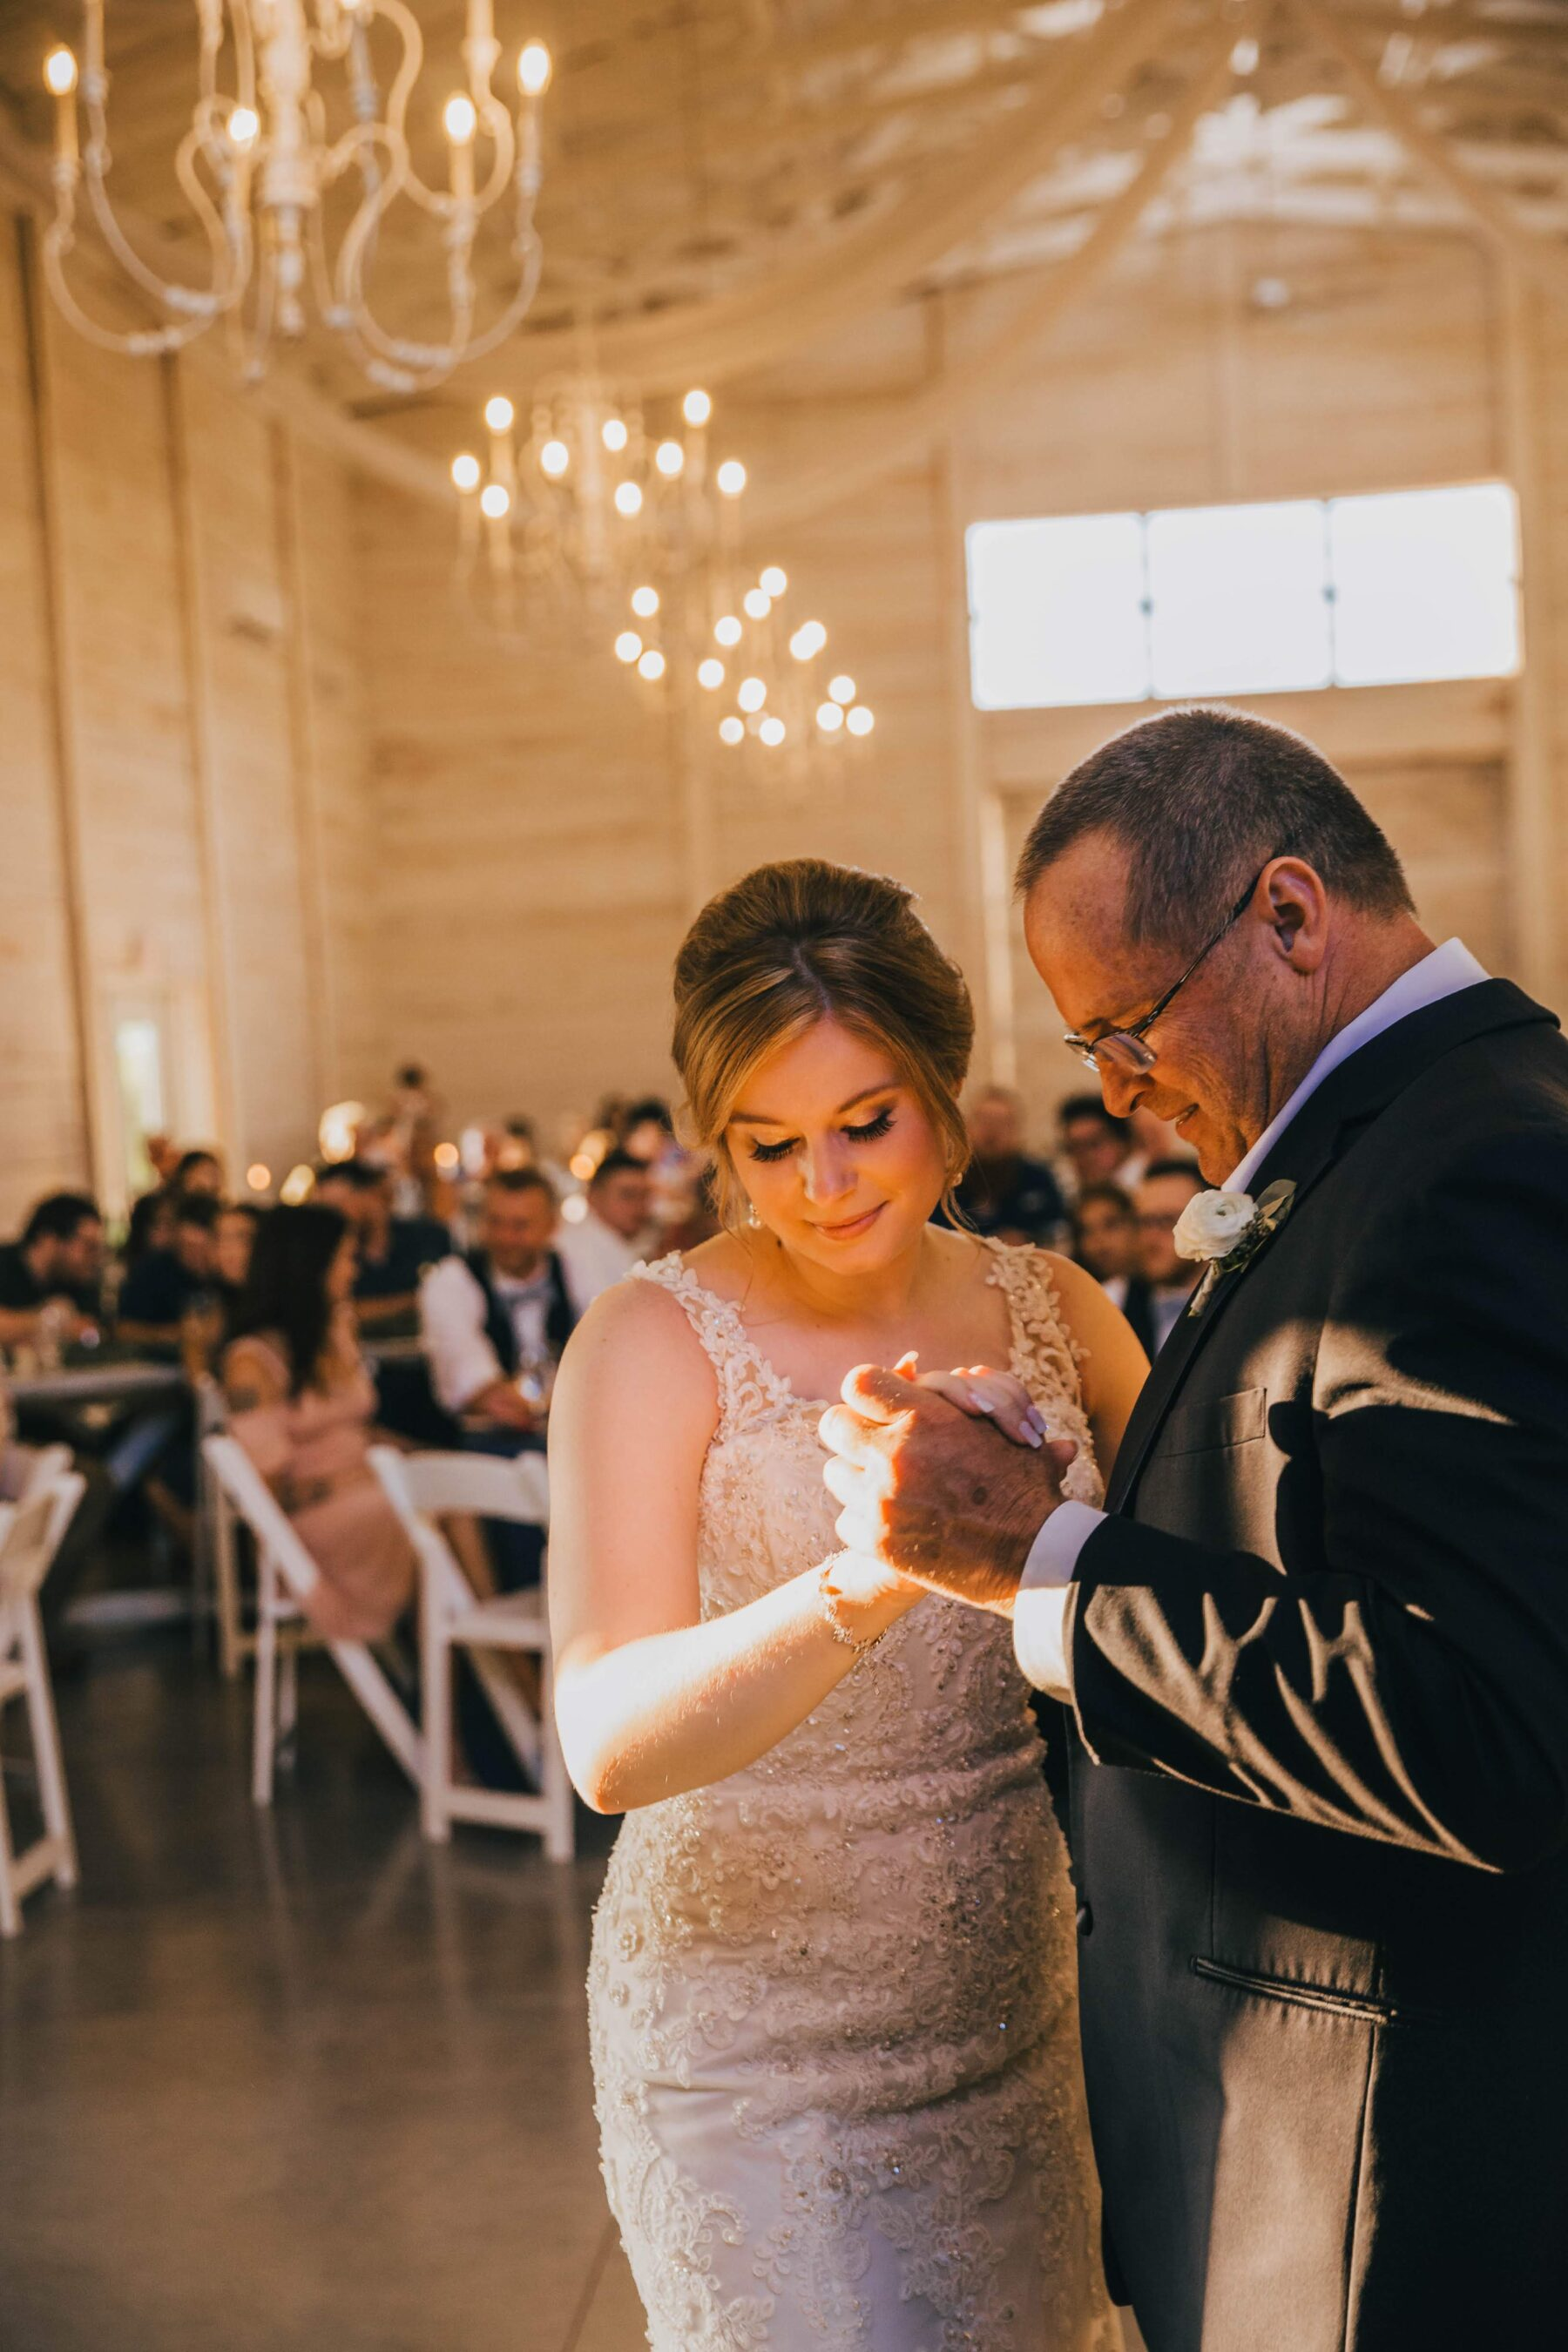 Father daughter dance: White Dove Barn Wedding by Grace Upon Grace Photography featured on Nashville Bride Guide